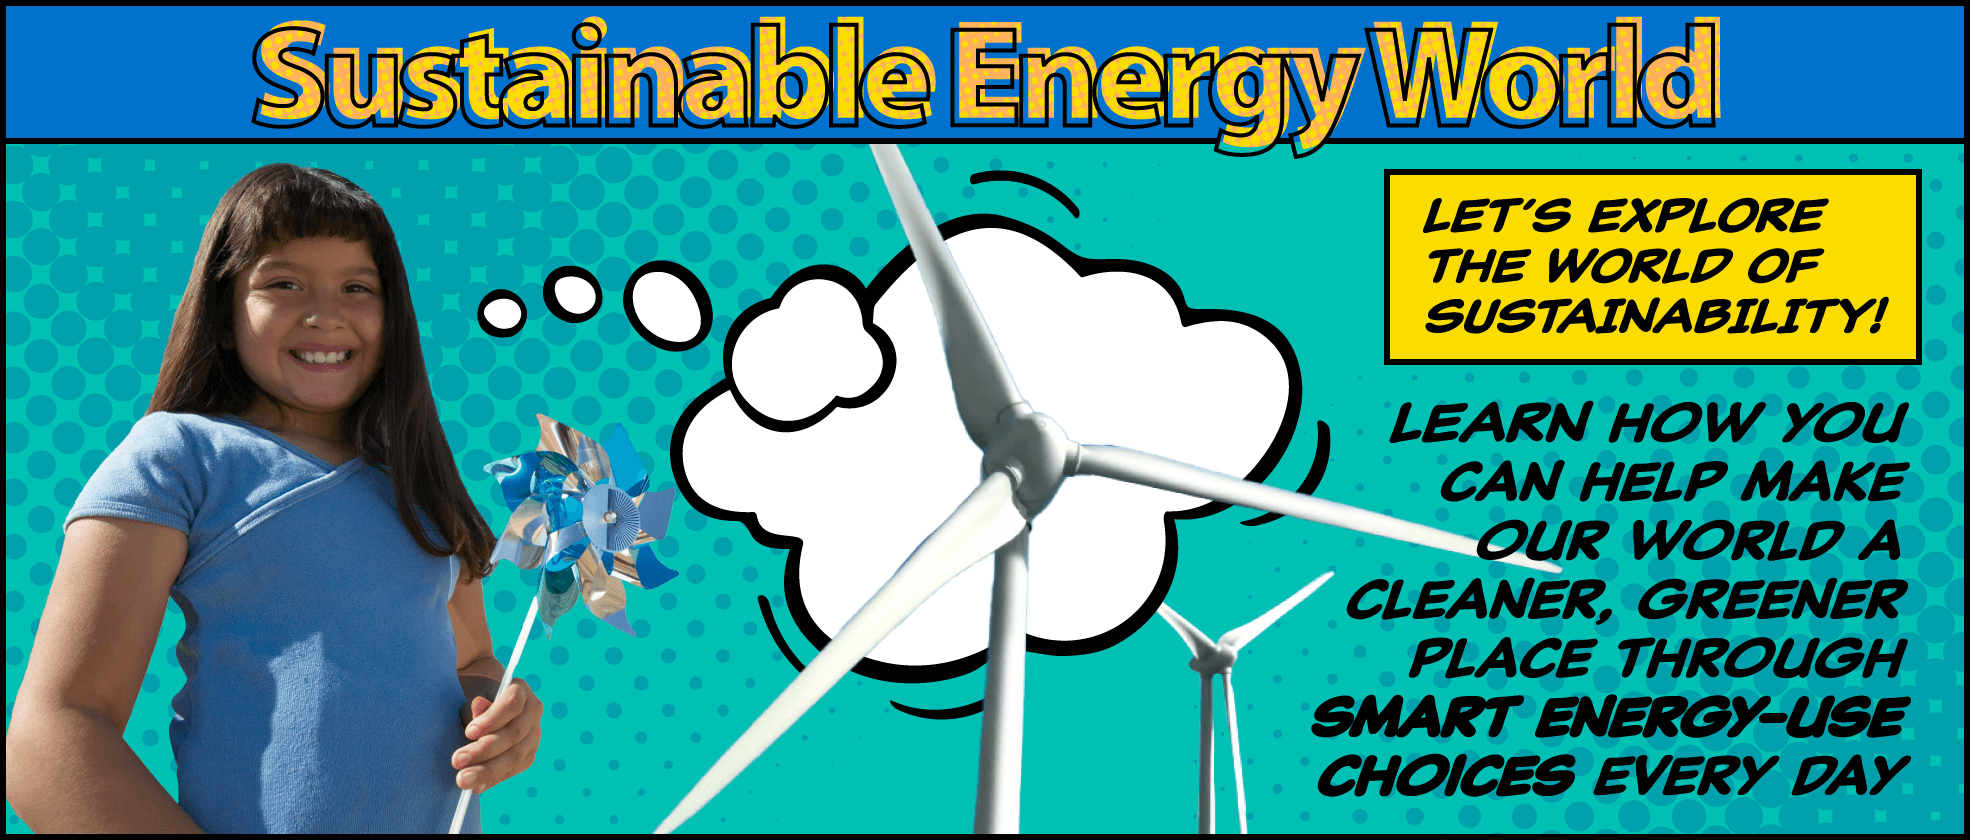 Sustainable Energy World: Let's explore the world of sustainability! Learn how you can help make our world a cleaner, greener place through smart energy-use choices every day